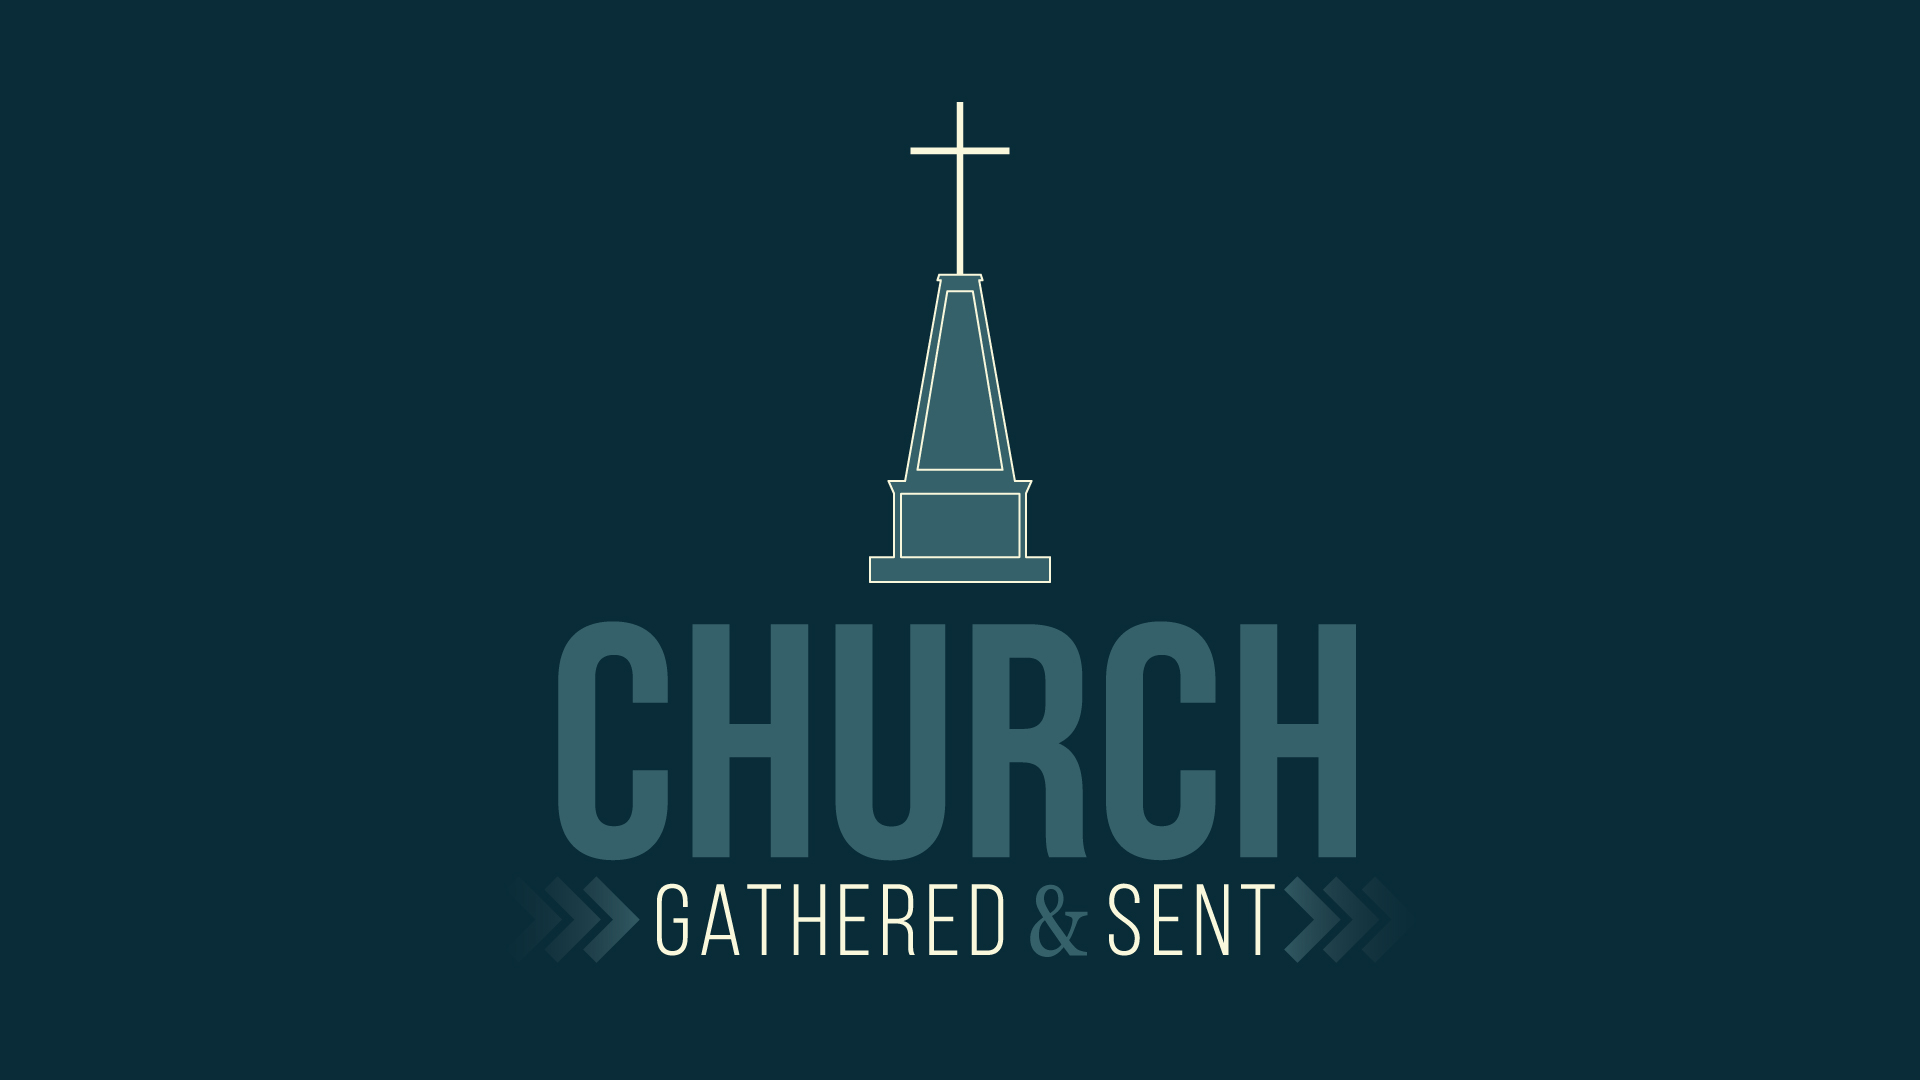 Church | Gathered & Sent